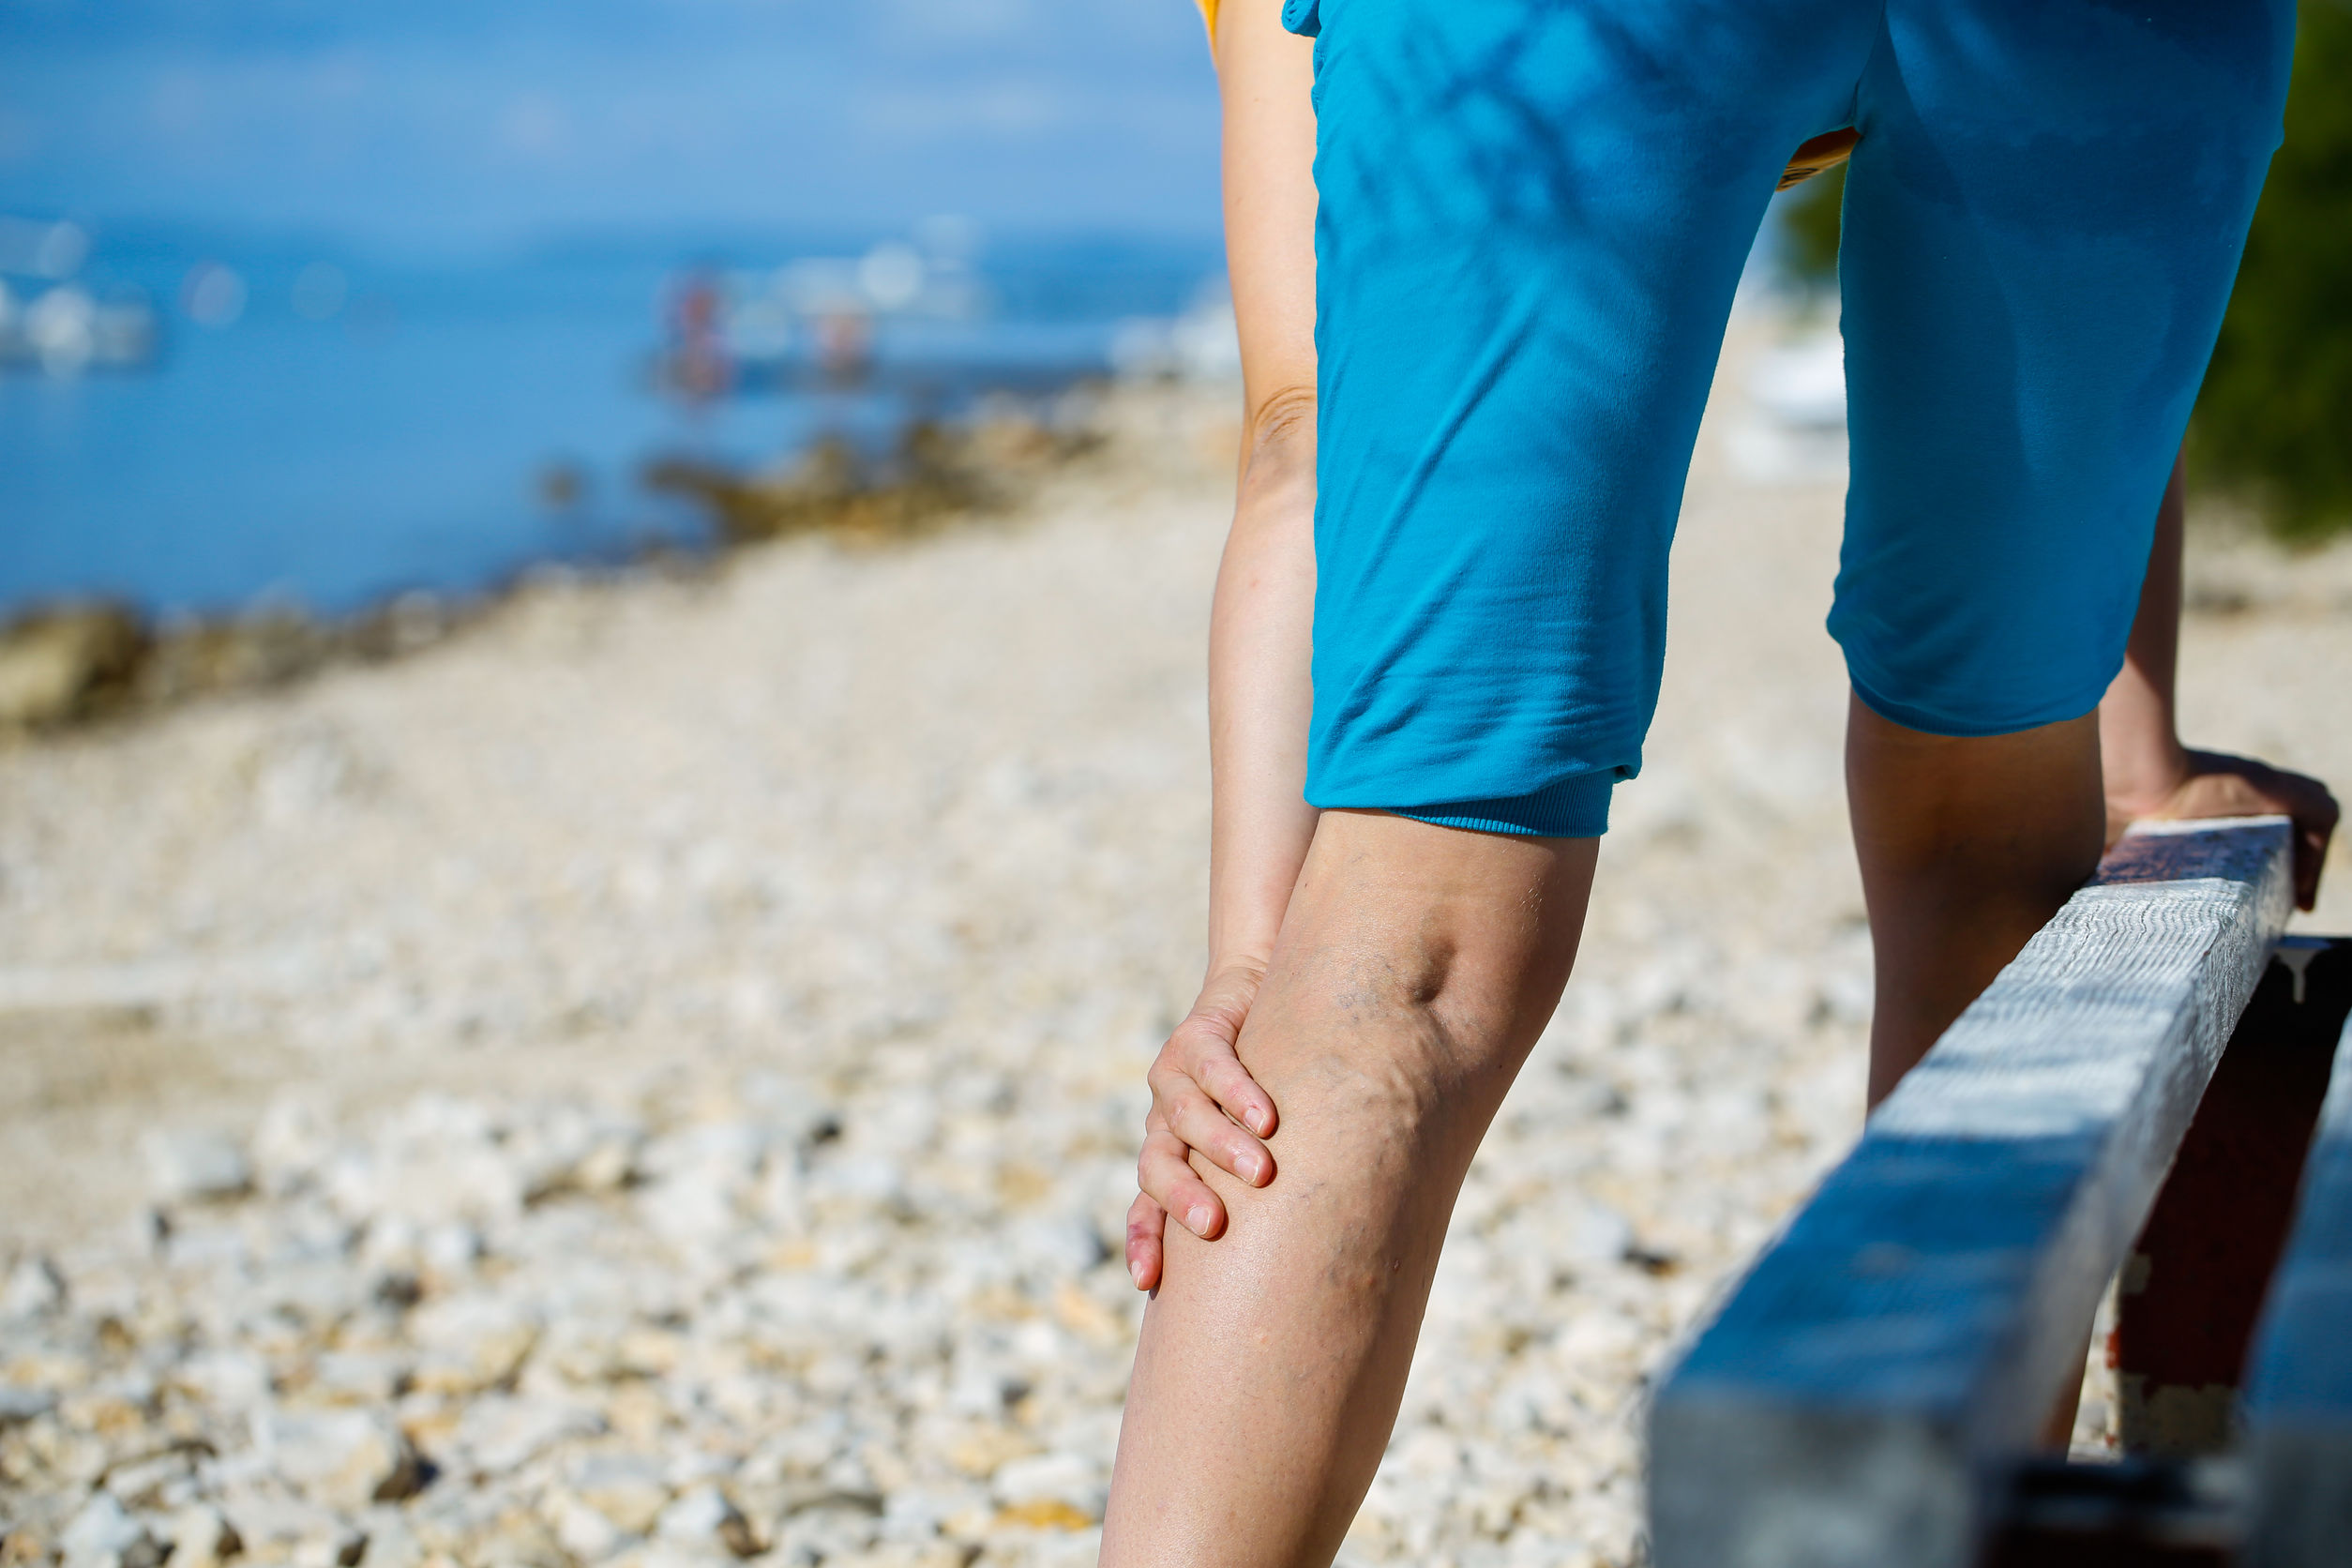 How can you prevent DVT when travelling?